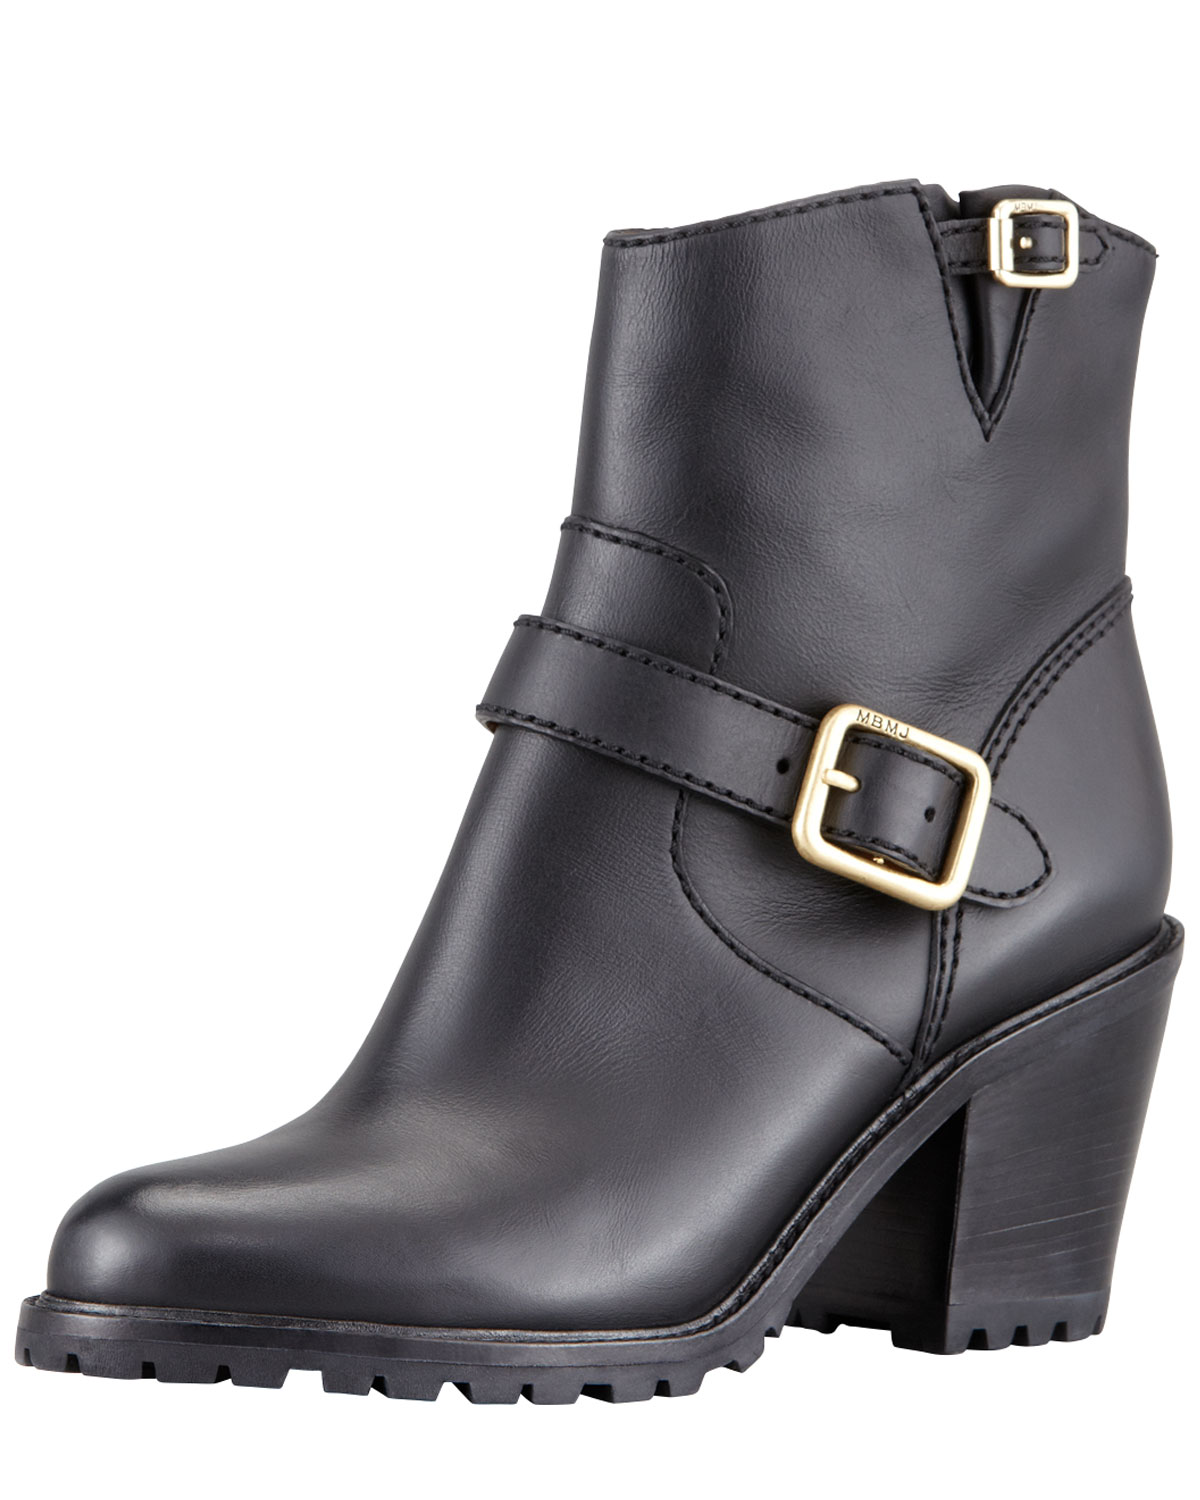 Marc by marc jacobs Womens Buckled Bloch-heel Motorcycle Boot ...